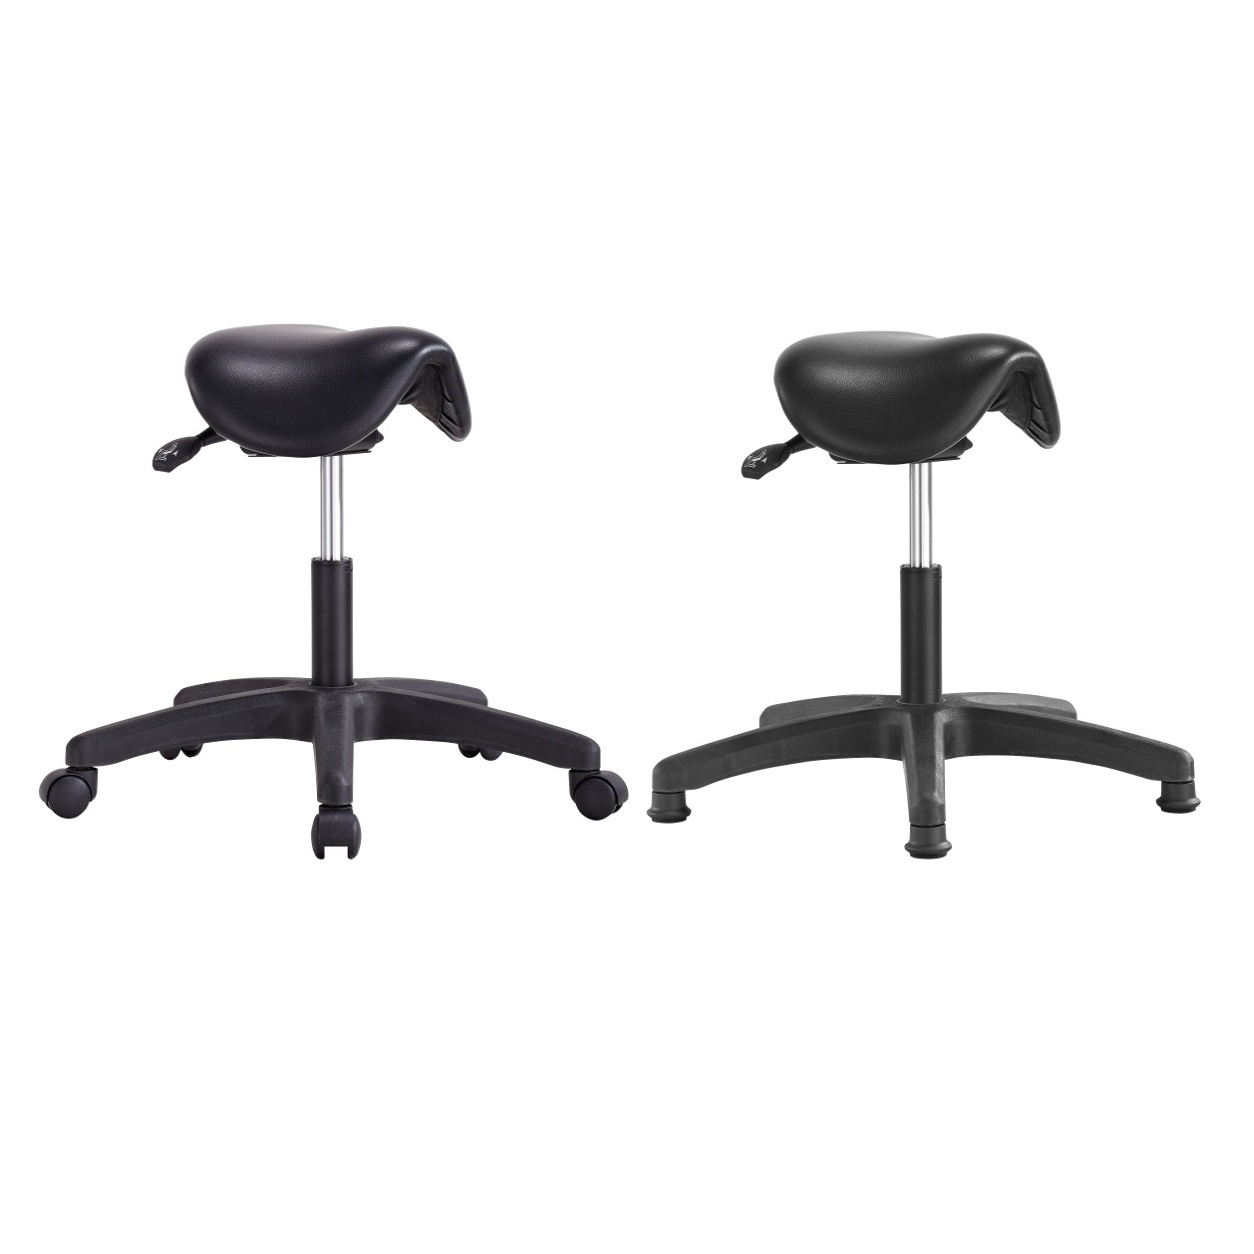 Tabouret assise basse type selle de cheval